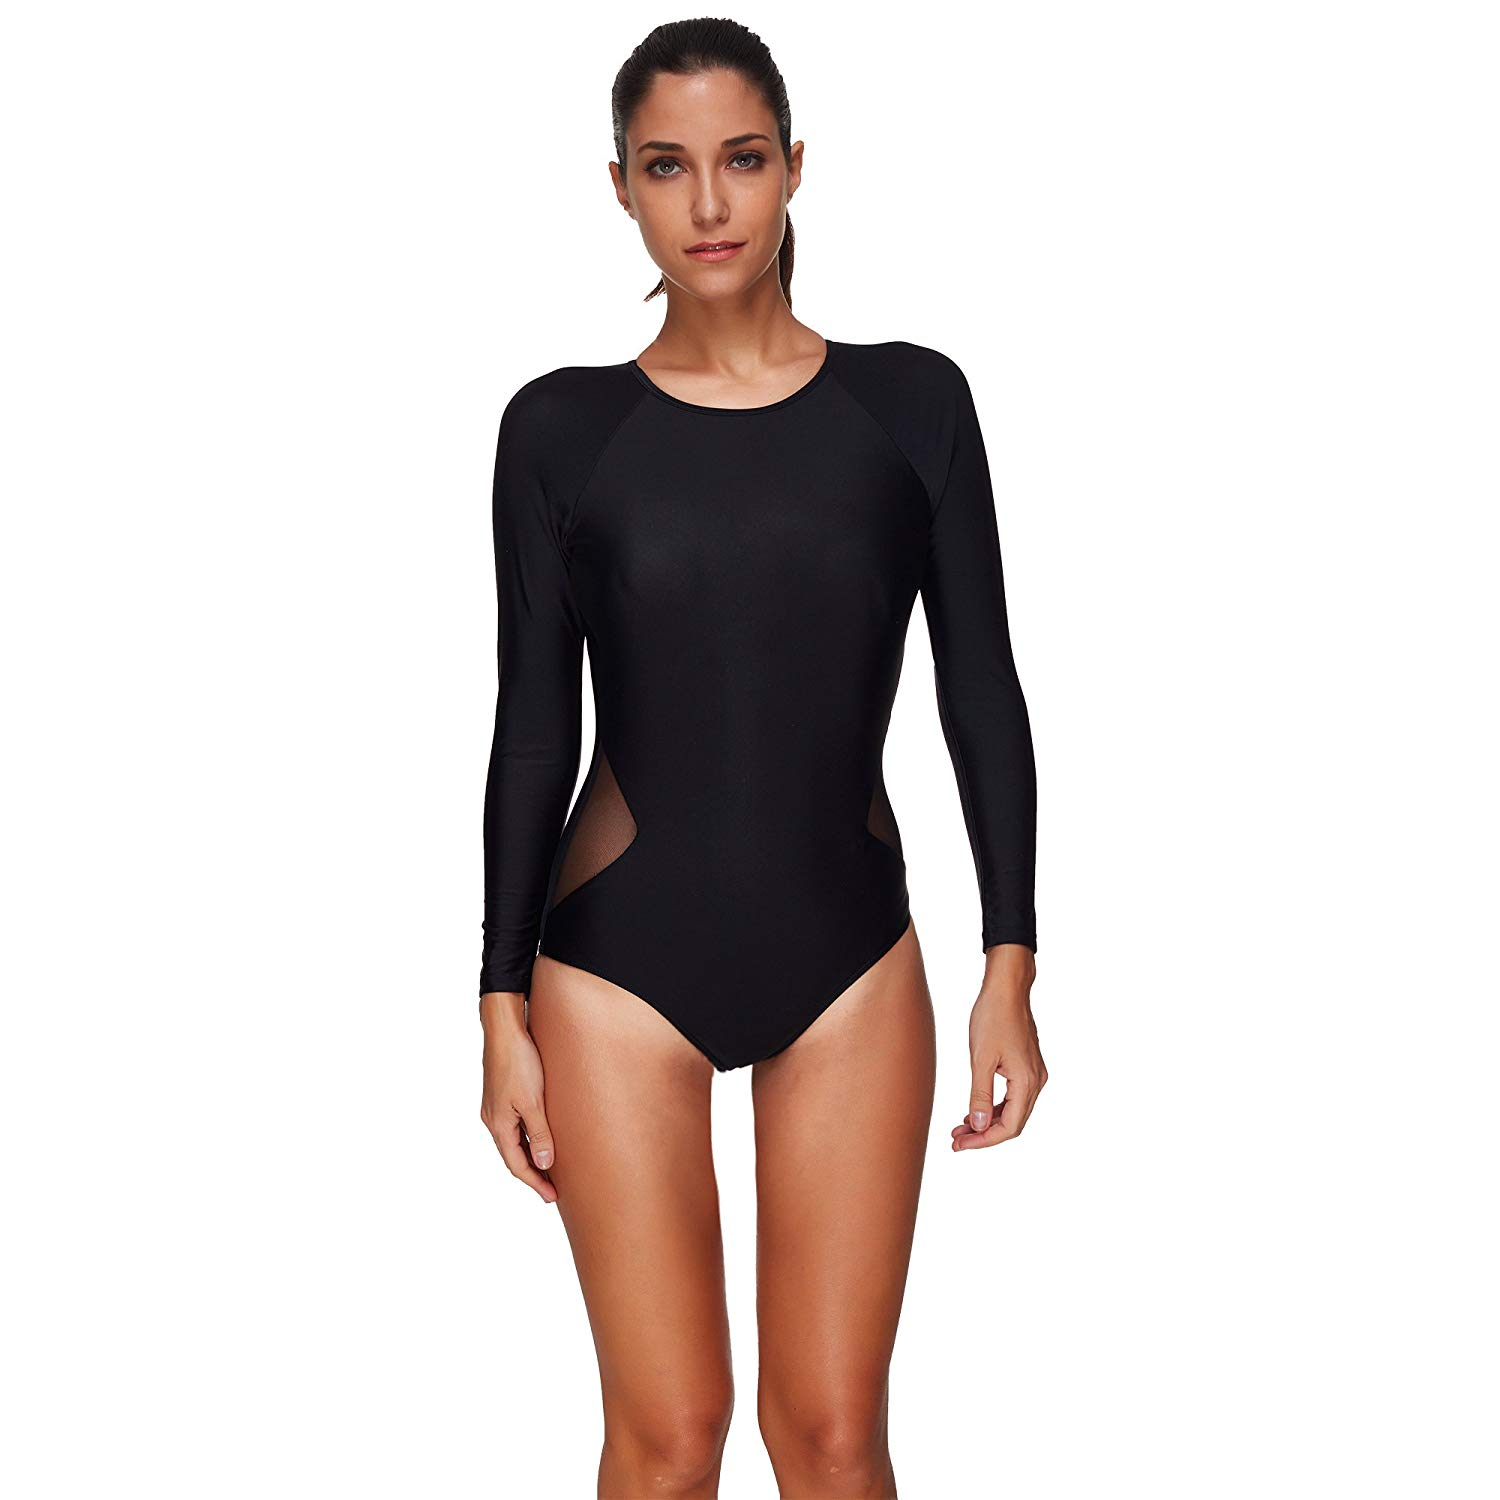 eeec849bf2e Get Quotations · BaronHong Women One Piece Swimsuit Bathing Suits Long  Sleeves Summer Black Halter Bikini Plus Size